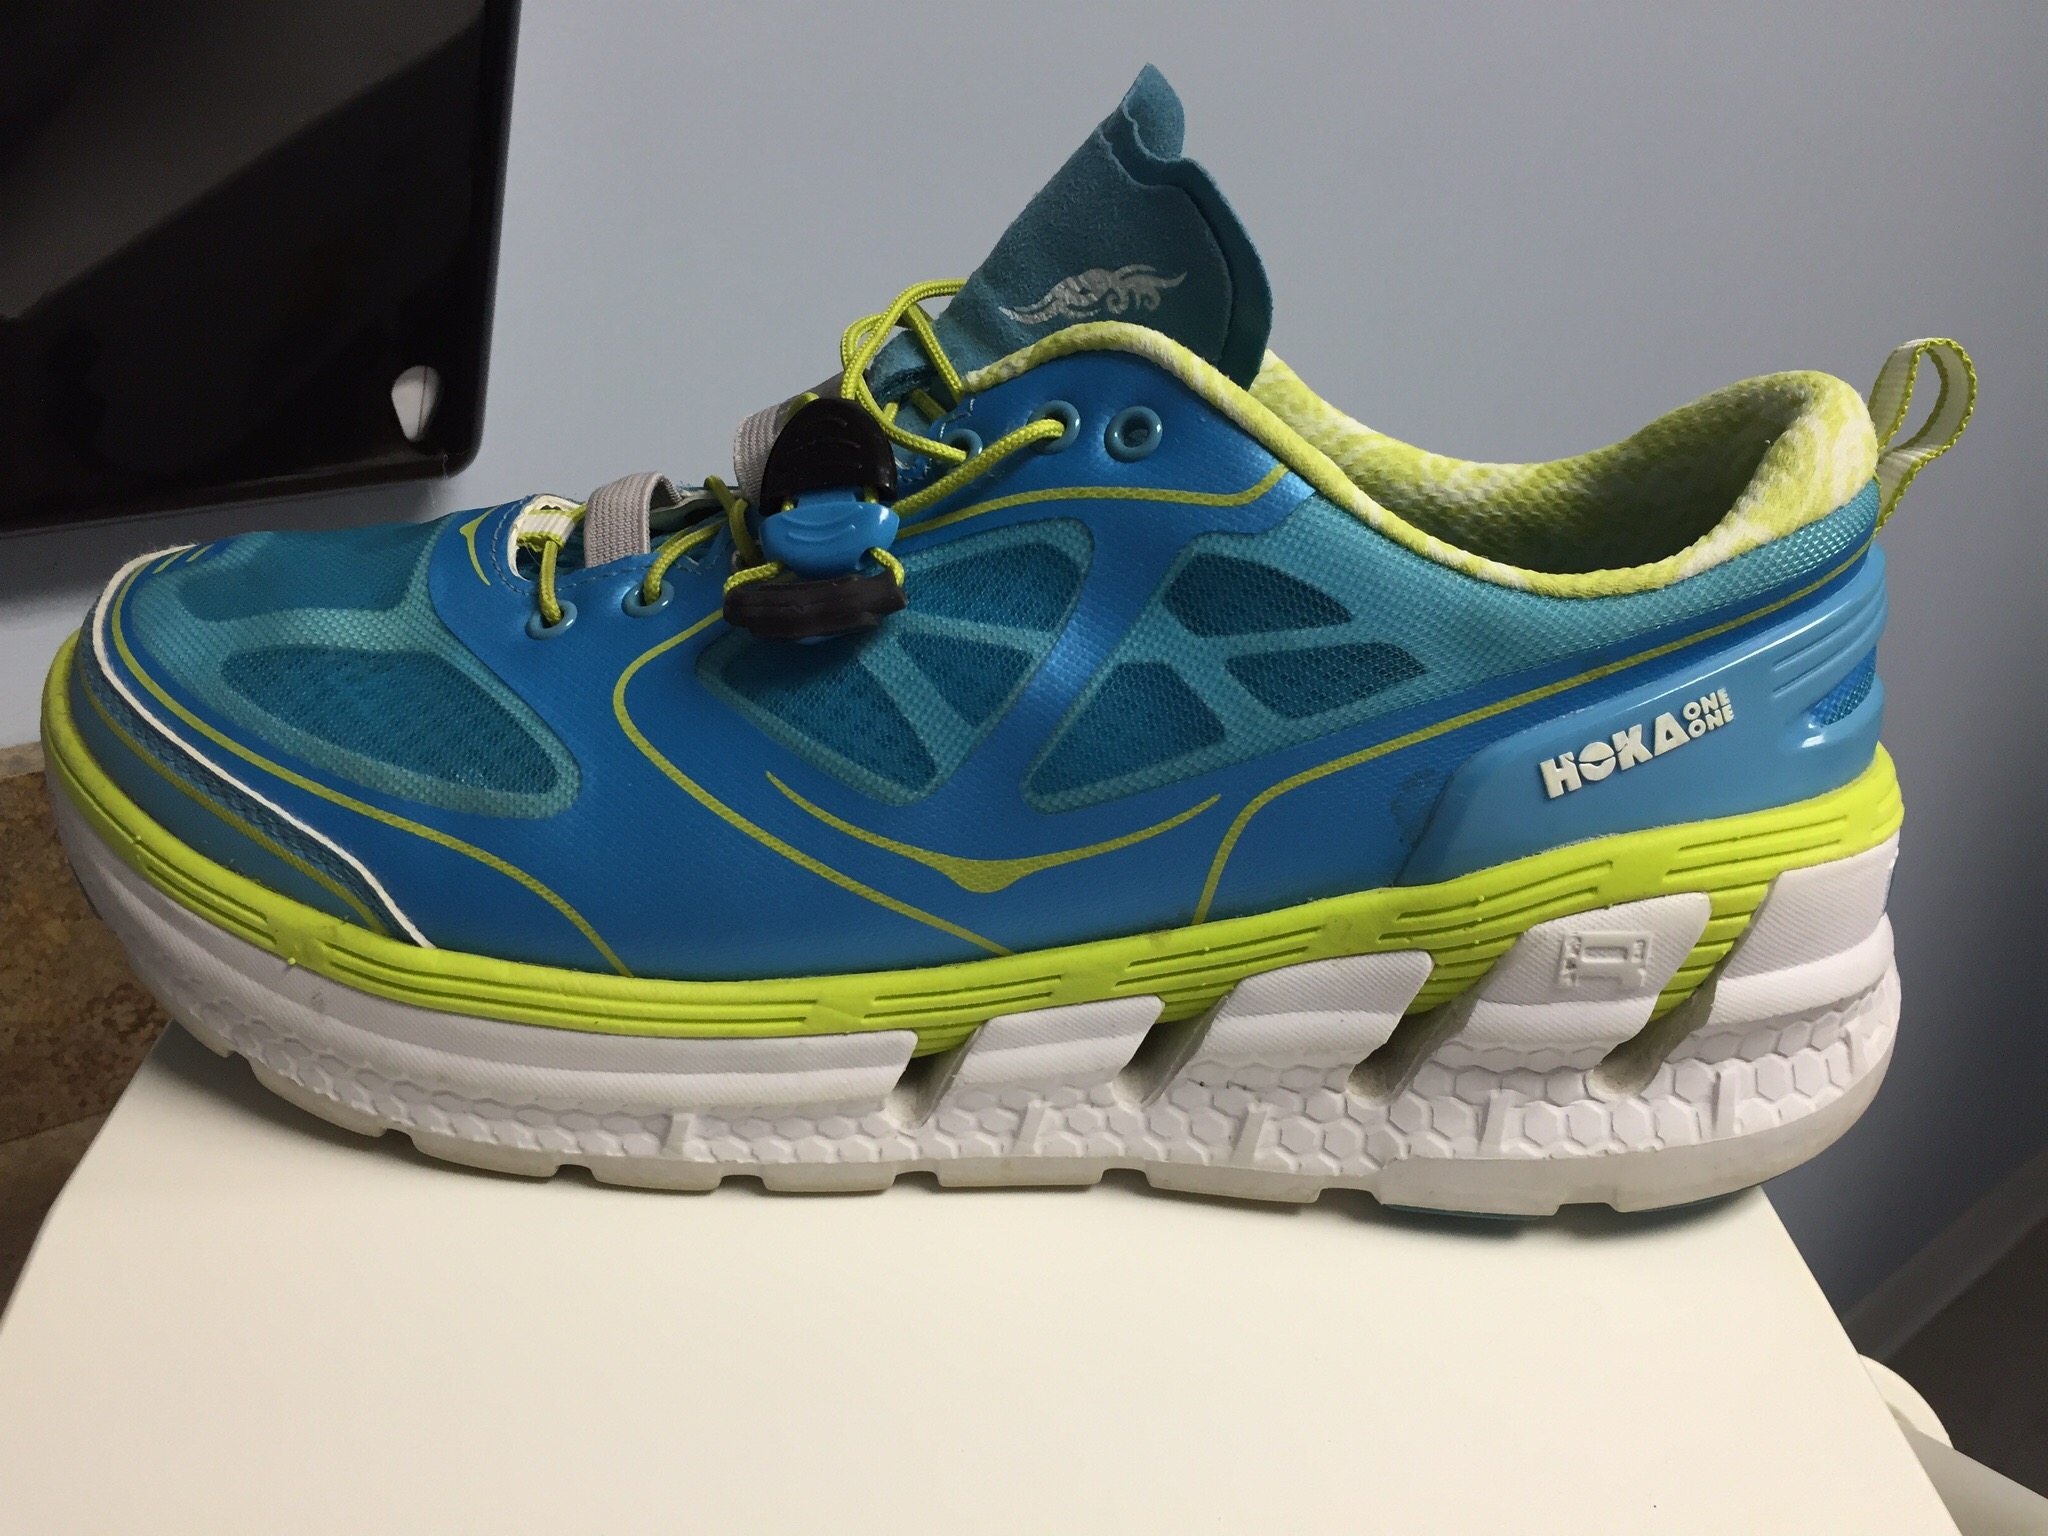 The Hoka One Can Function As A Scaled Down Cam Walker Which You Wear While Recovering From An Injury And Is More Practical In Every Situations Such